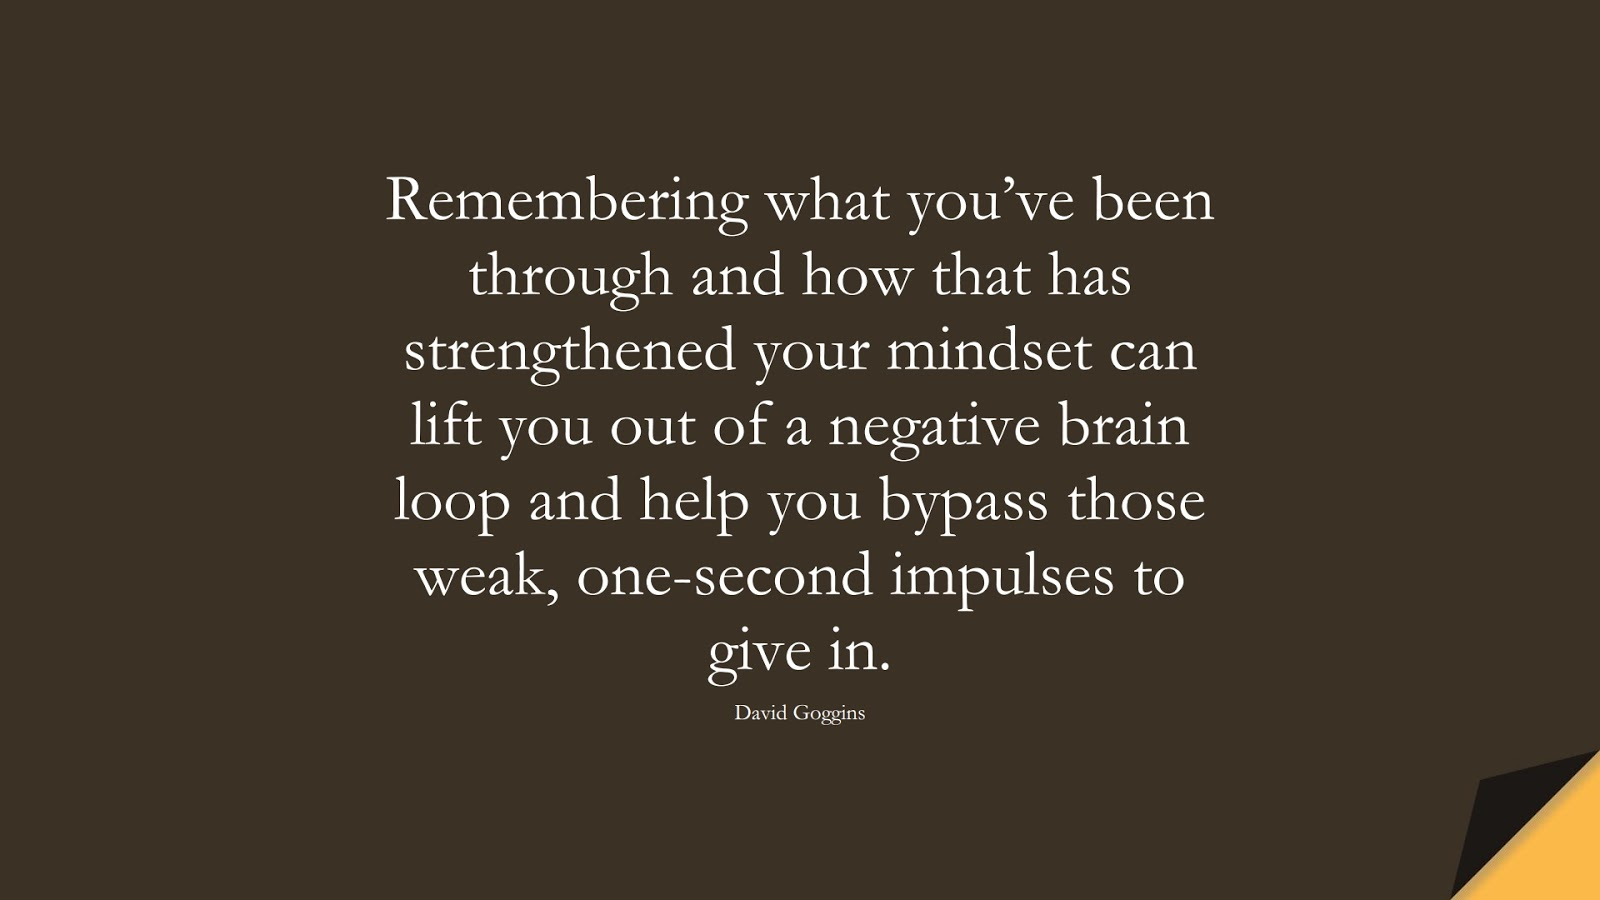 Remembering what you've been through and how that has strengthened your mindset can lift you out of a negative brain loop and help you bypass those weak, one-second impulses to give in. (David Goggins);  #EncouragingQuotes